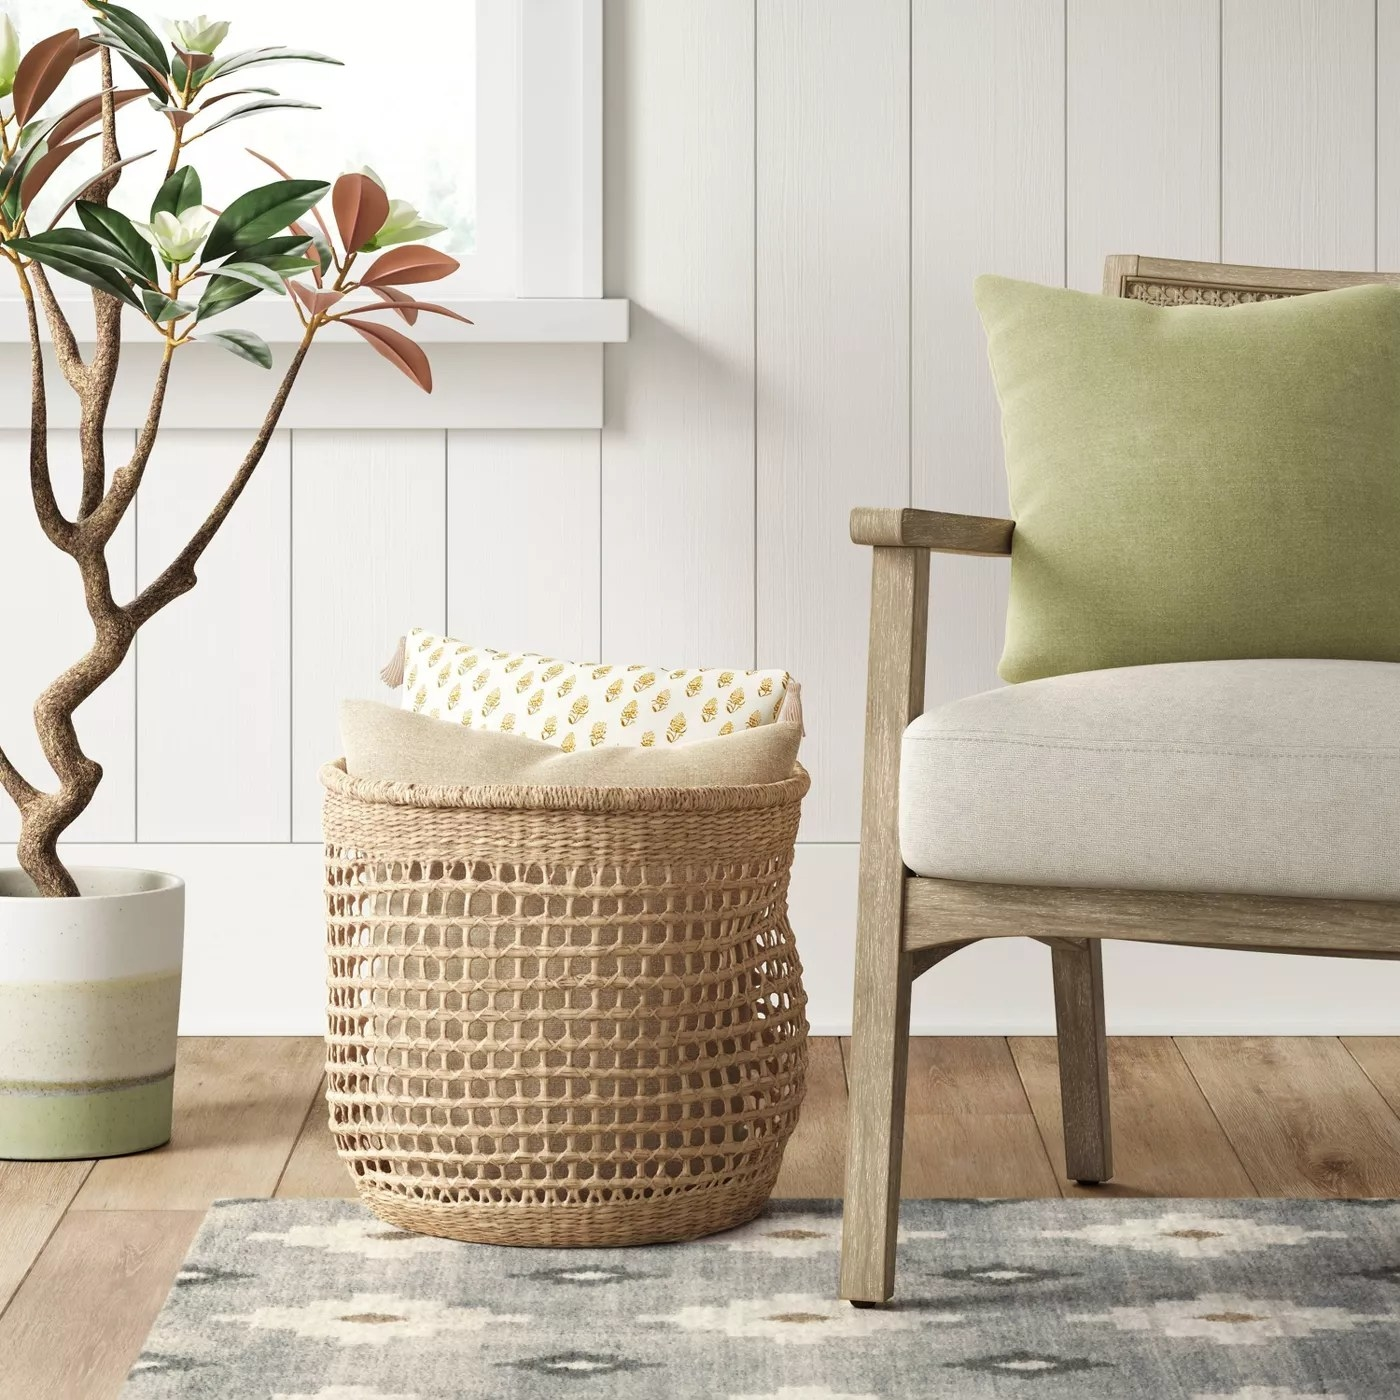 The basket filled with pillows